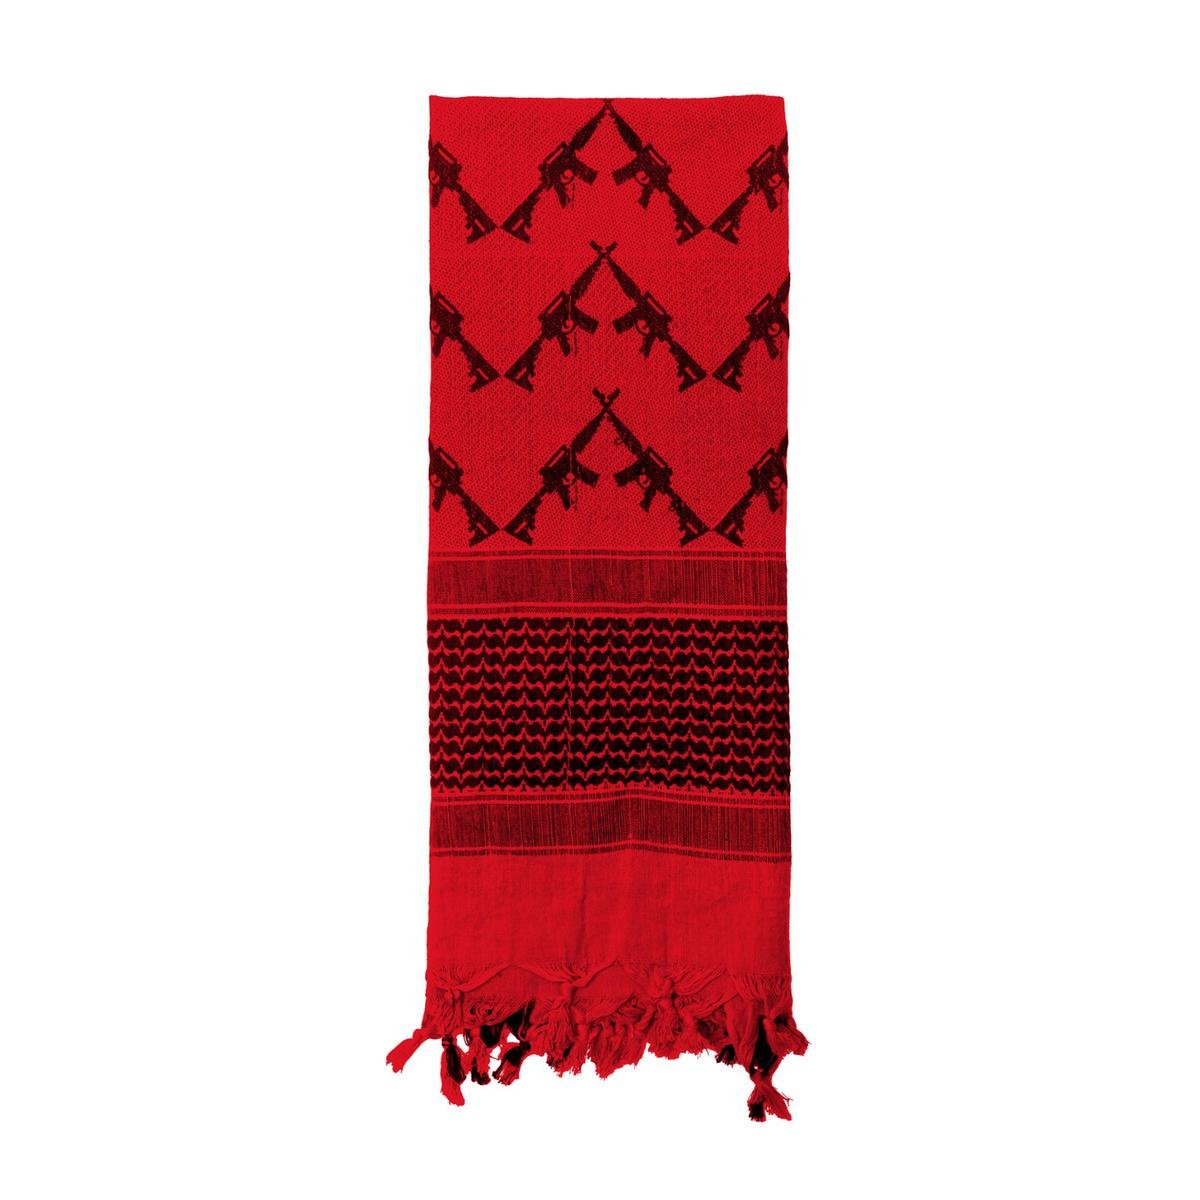 Rothco Crossed Rifles Shemagh Tactical Scarf, Red